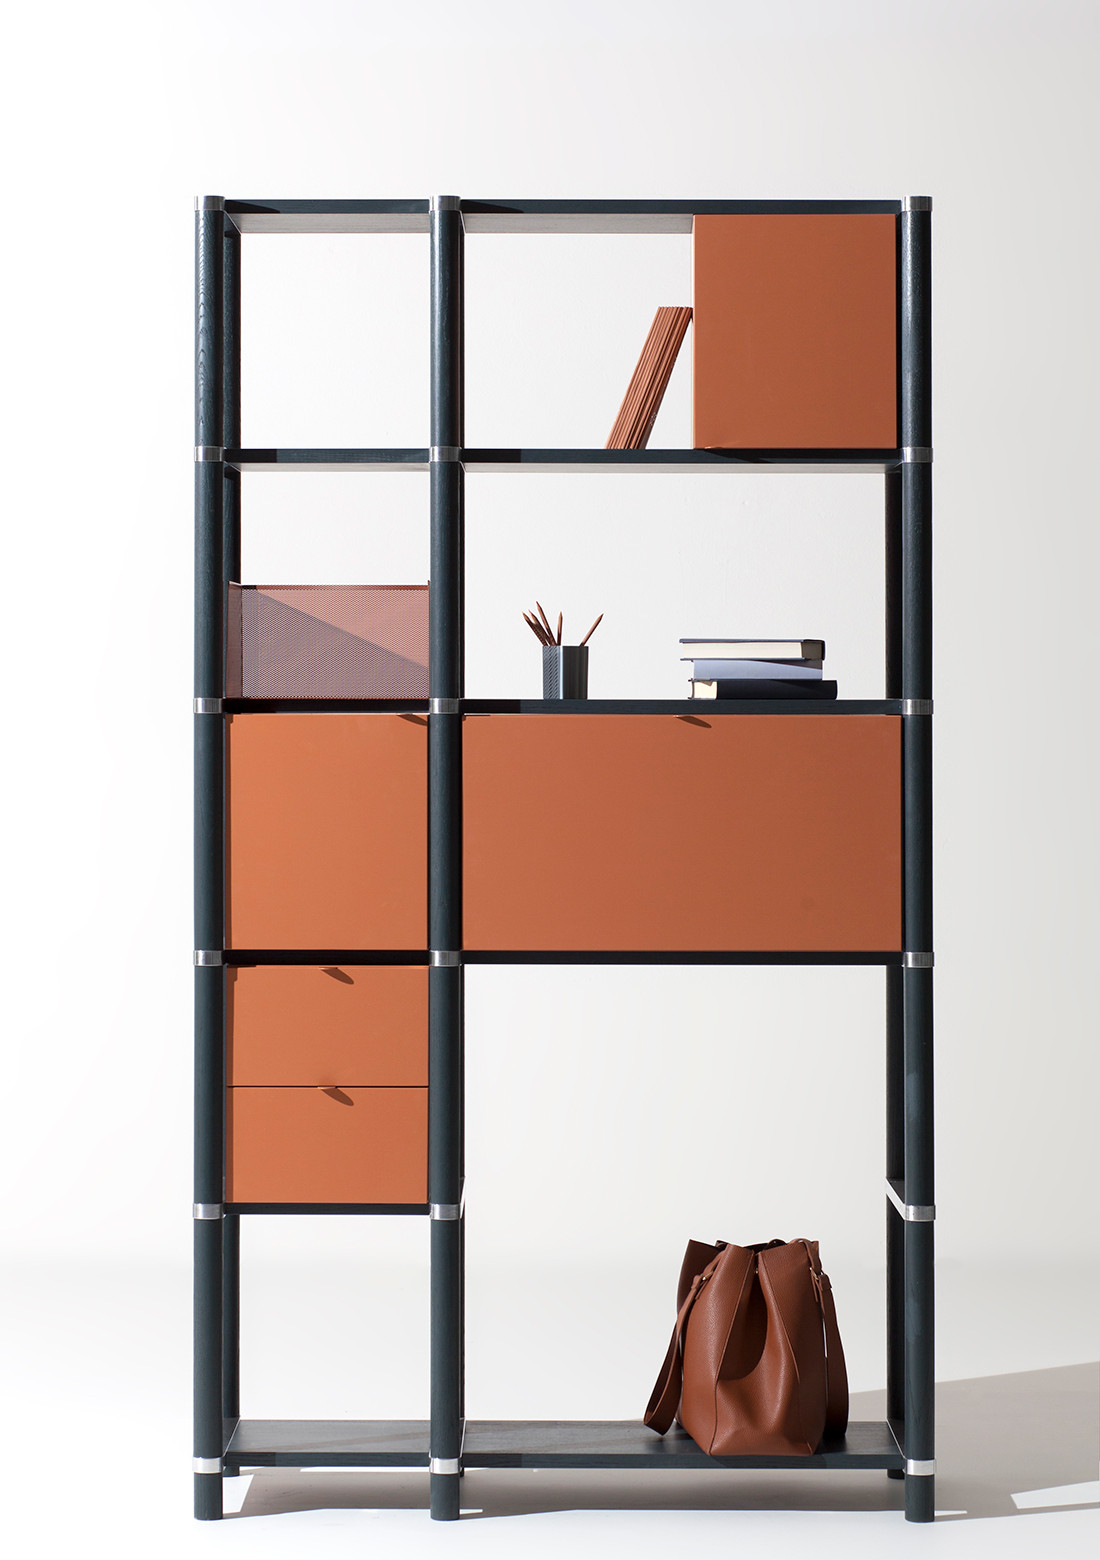 The highly configurable Stem modular bookcase system by Philippe Nigro for Manerba.